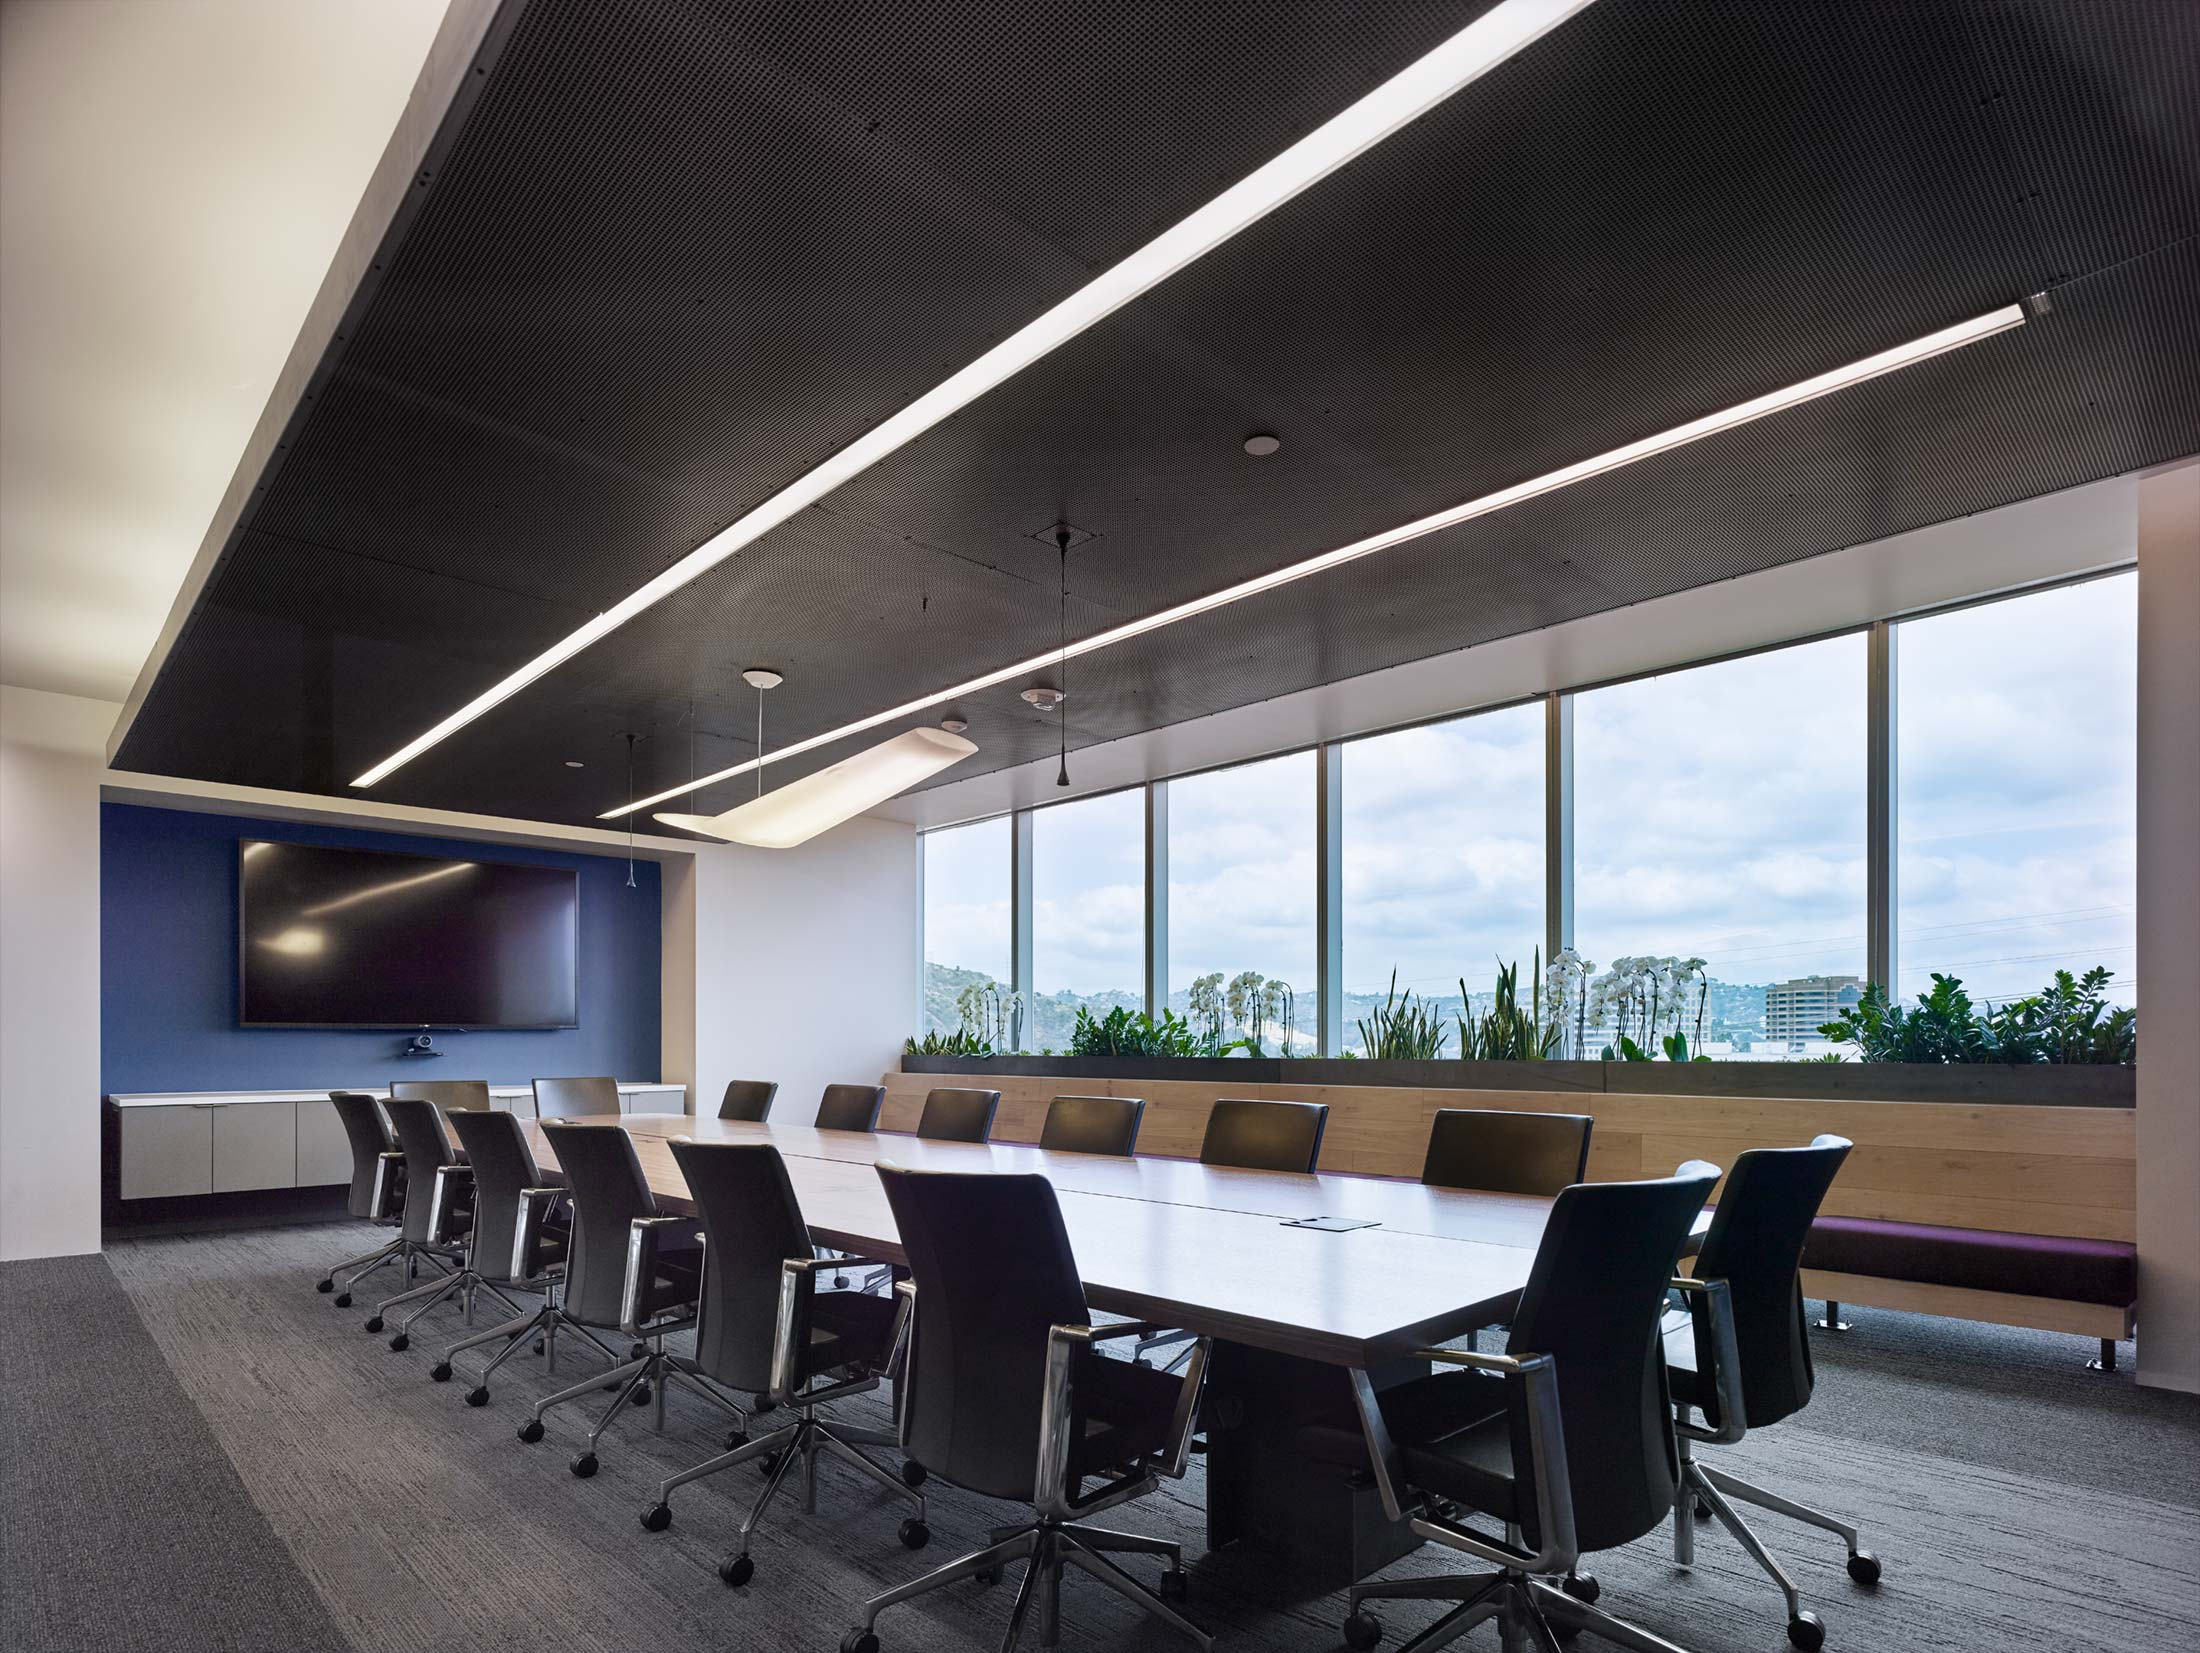 modern-architecture-commercial-interiors-workplace-office-california-shubindonaldson-freemantle-media-04